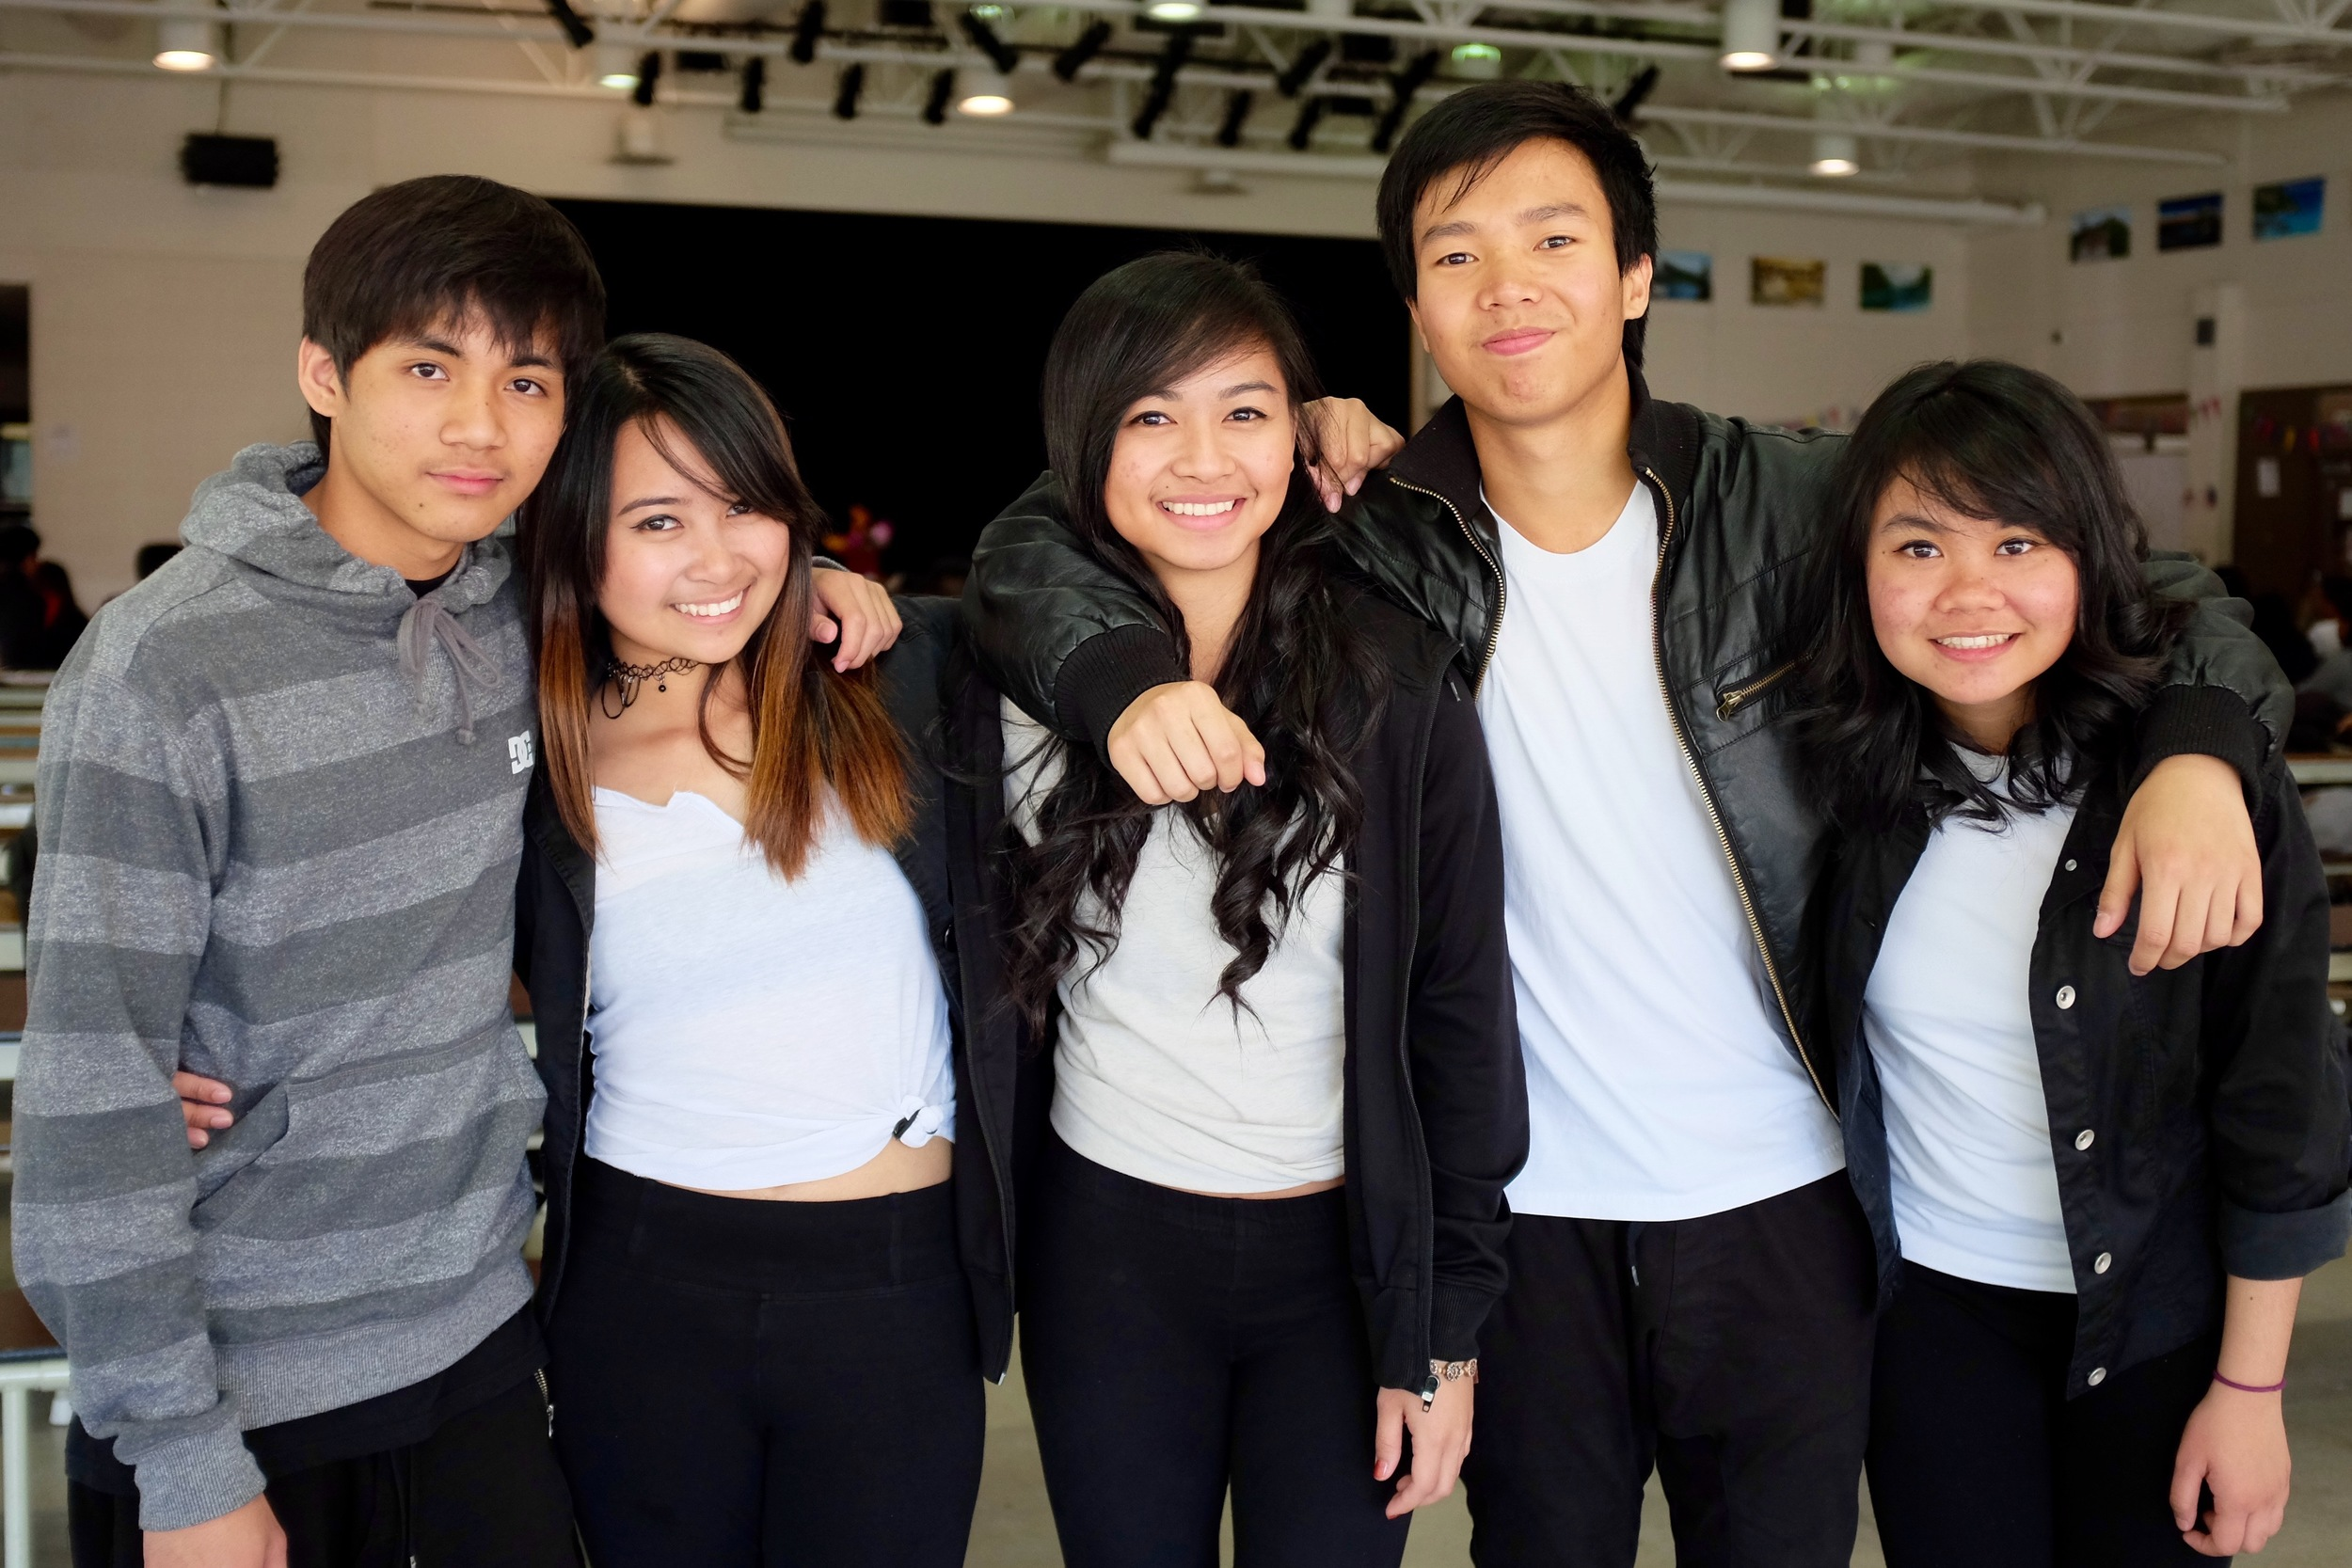 Lee Christopher D. Arciosa, Jamille Genson, Jessa Calantoc, Marc Kerwin V. Fernando, and Glyza Mae Prudencio of Ohana, a dance crew from Northview Heights Secondary School.